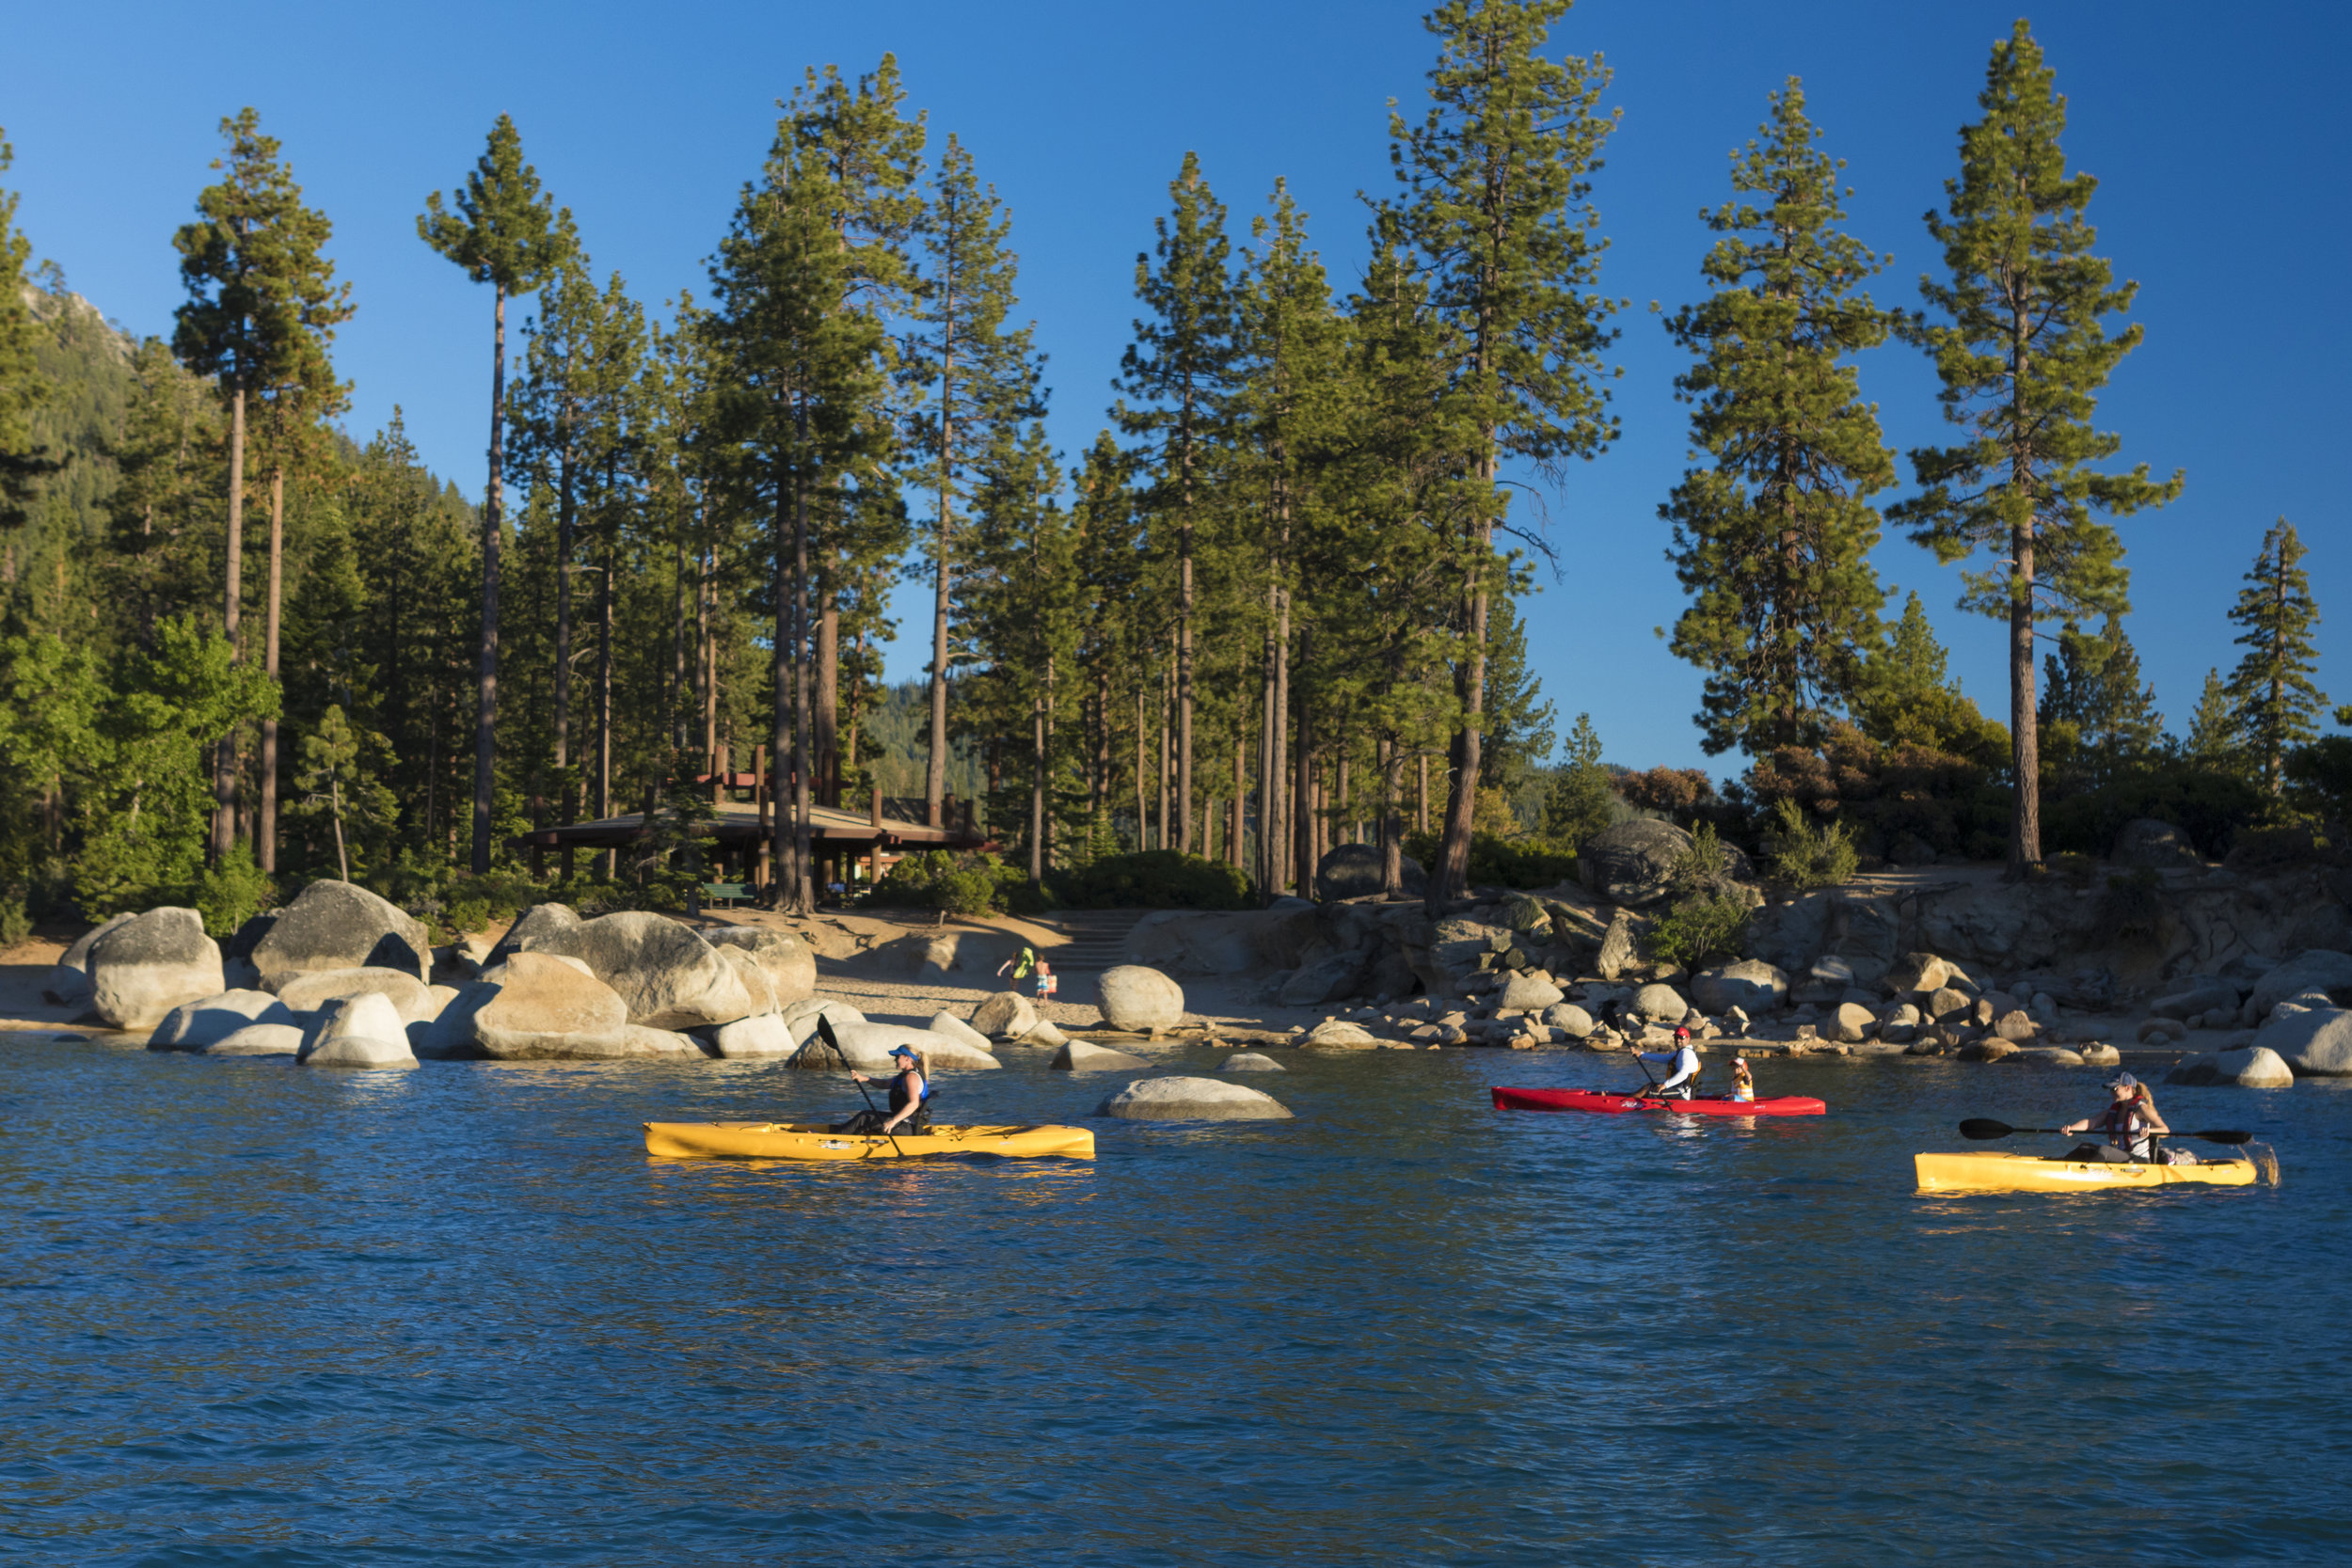 Quest_action_Tahoe_group_1484_full.jpg